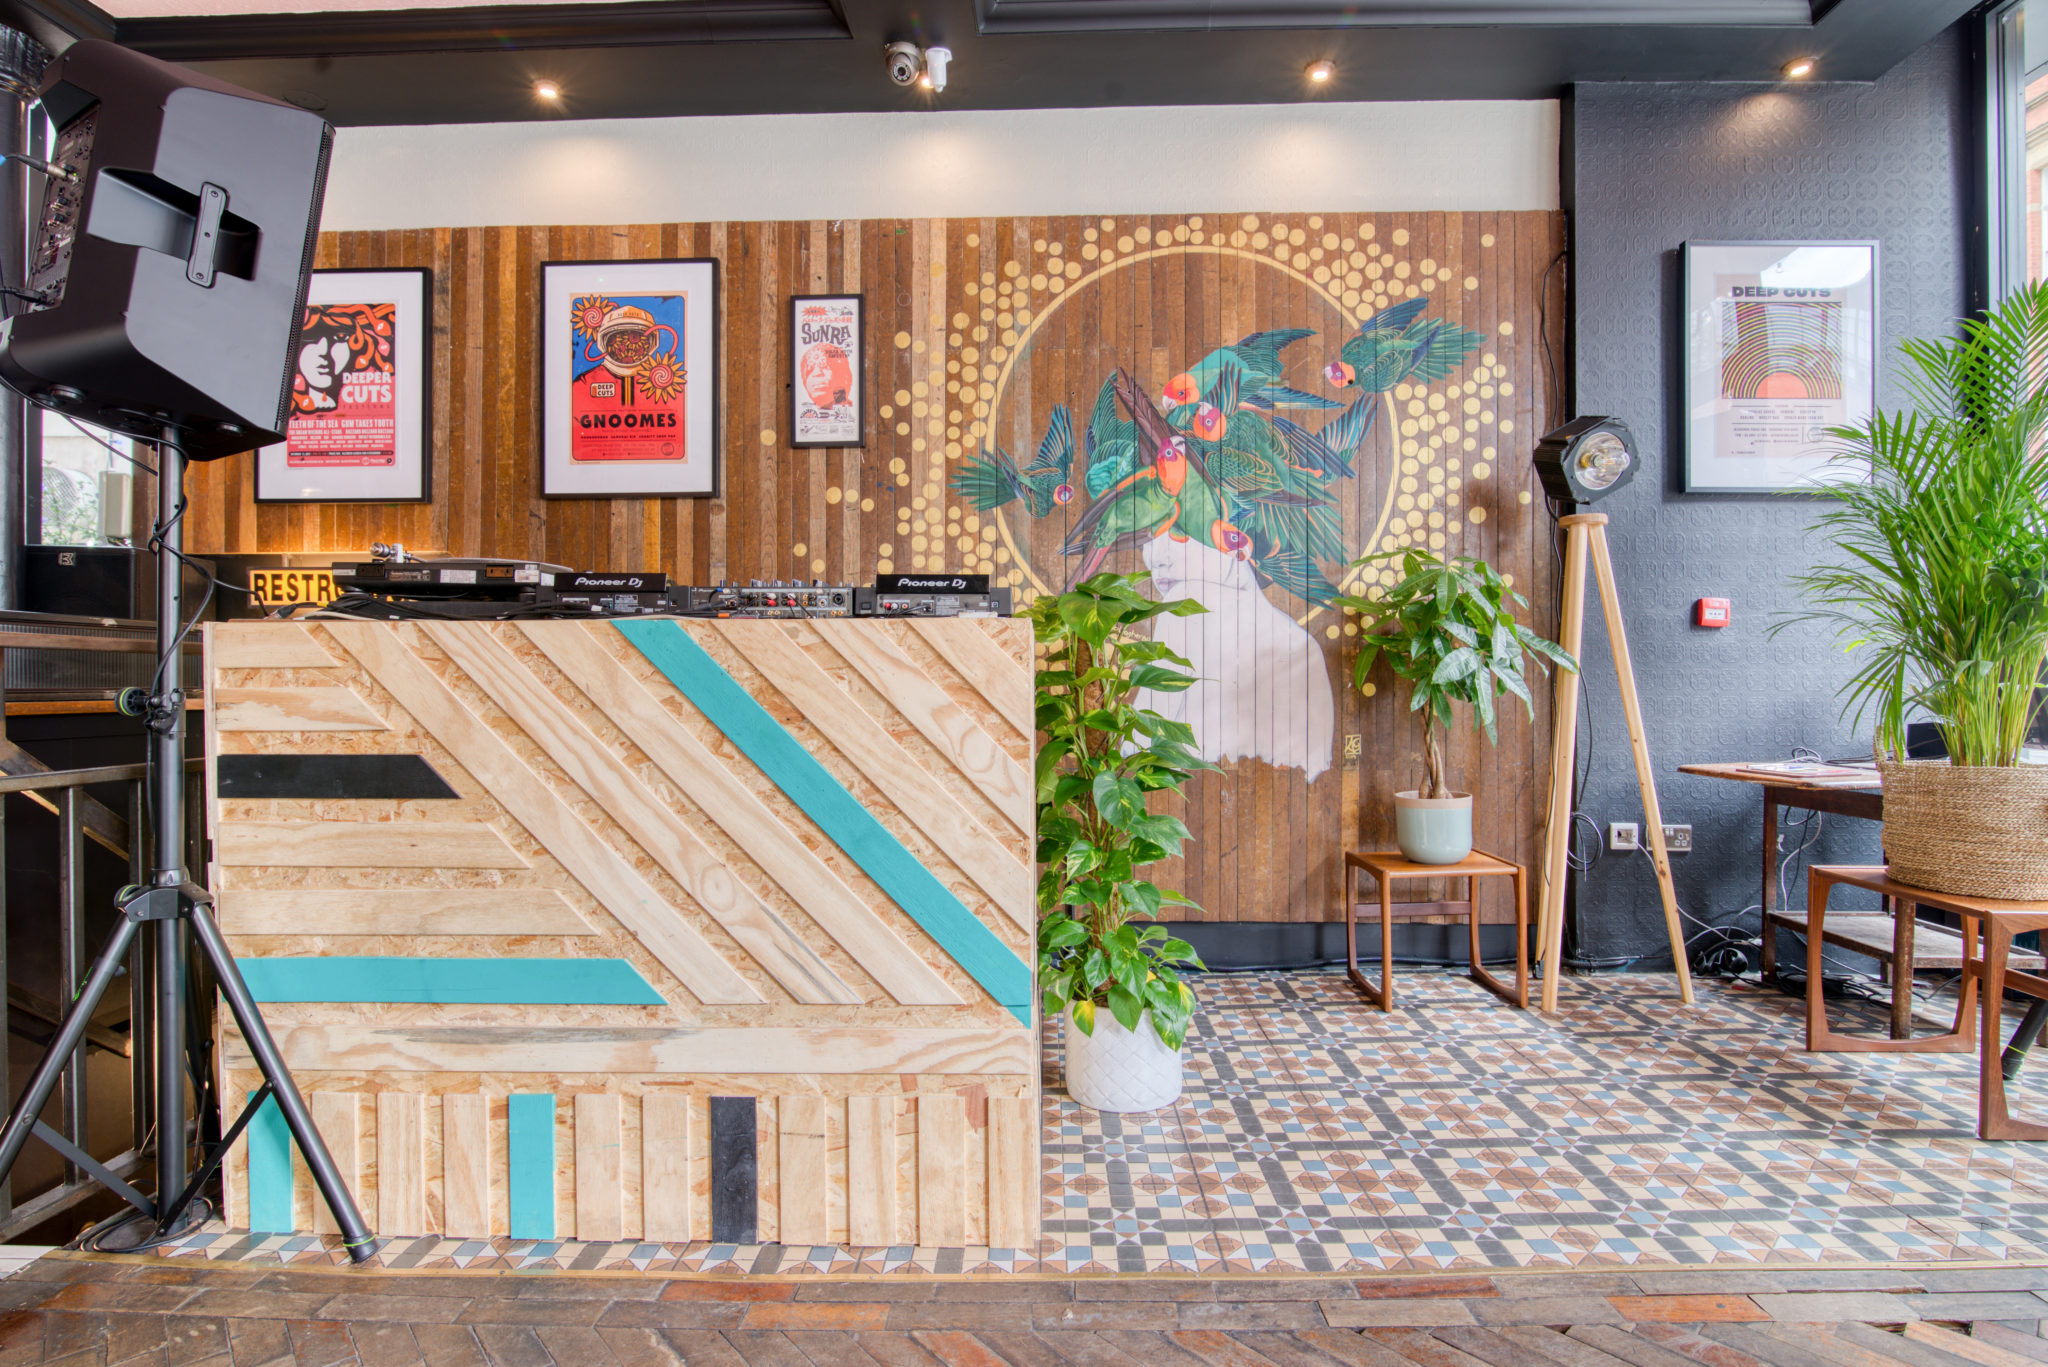 Groovy Latin American Hotel Startup Opens First Uk Location In Download Free Architecture Designs Jebrpmadebymaigaardcom